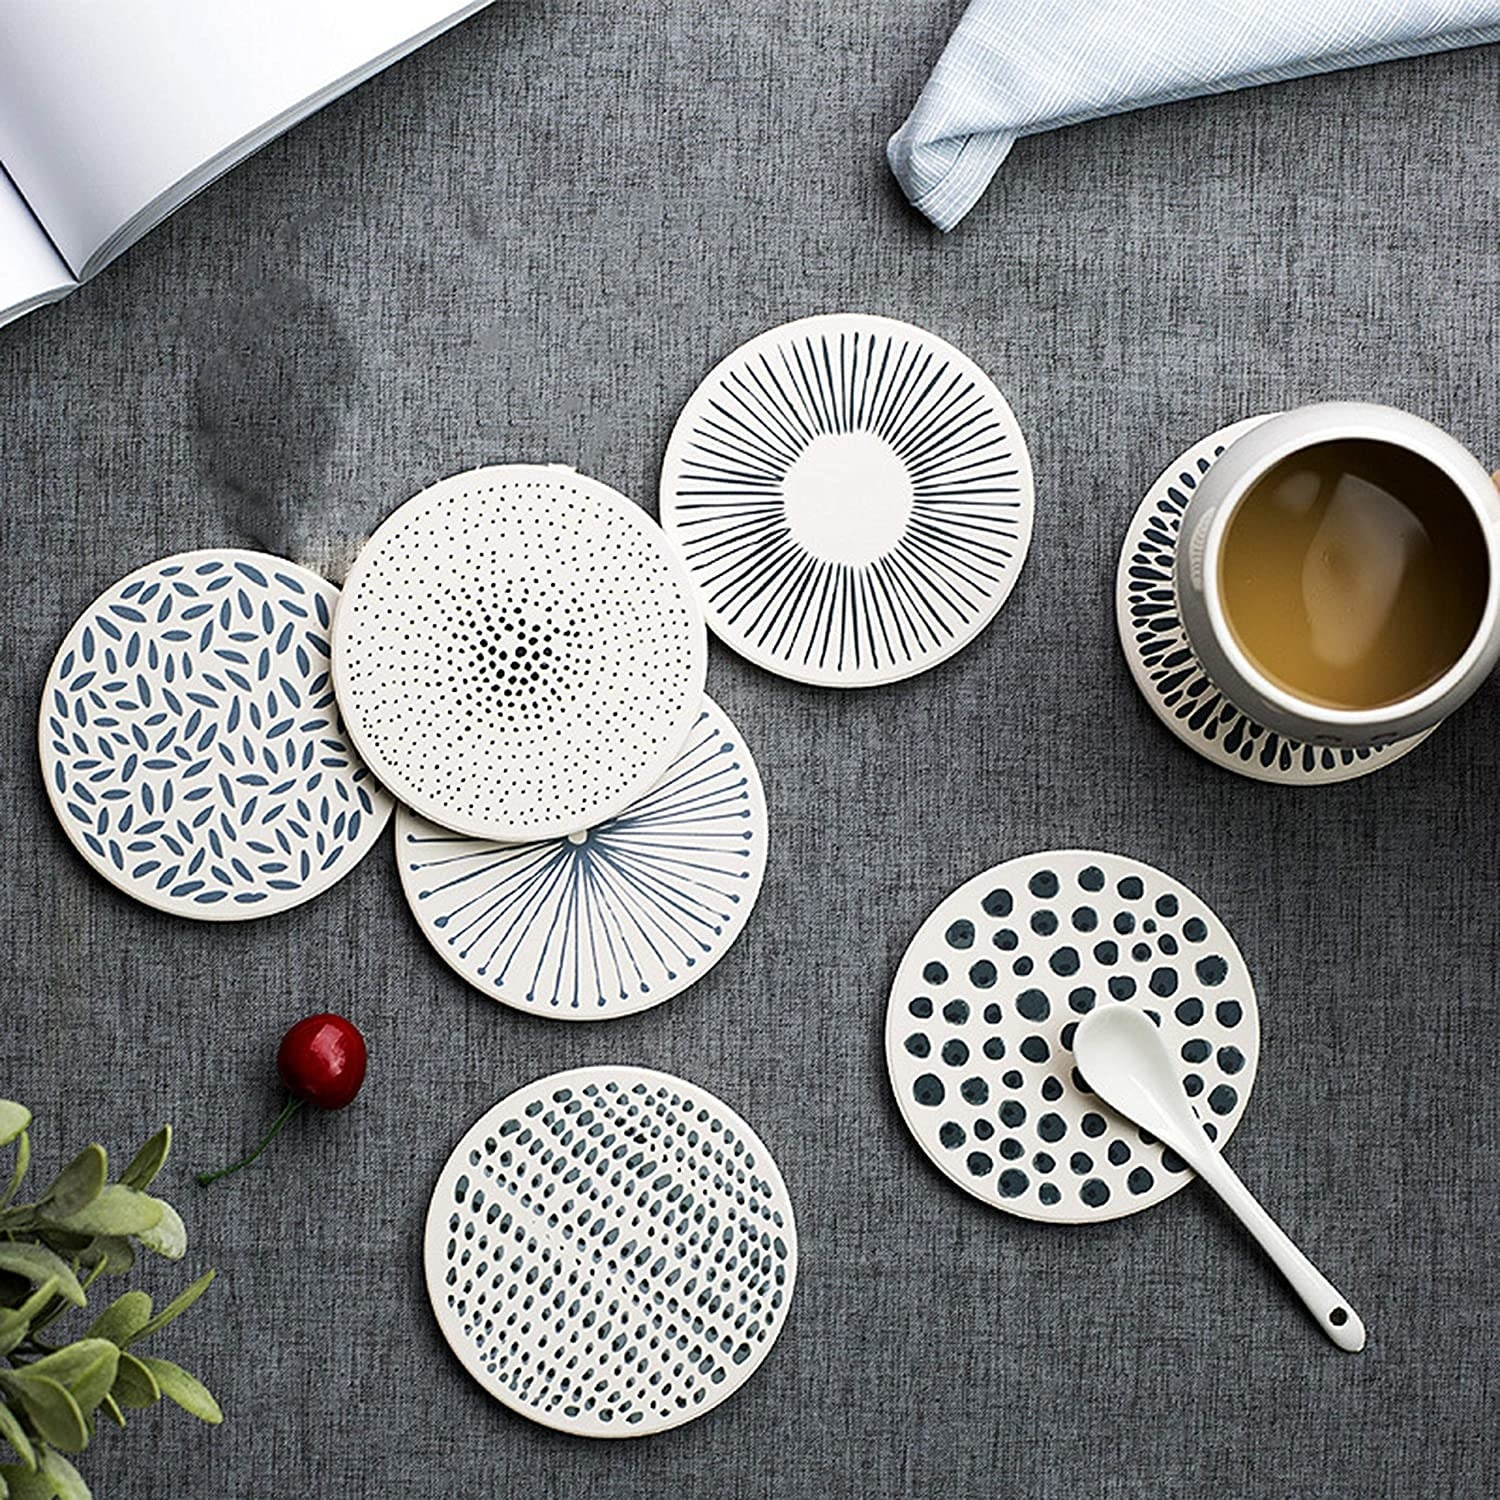 the round coasters in different patterns